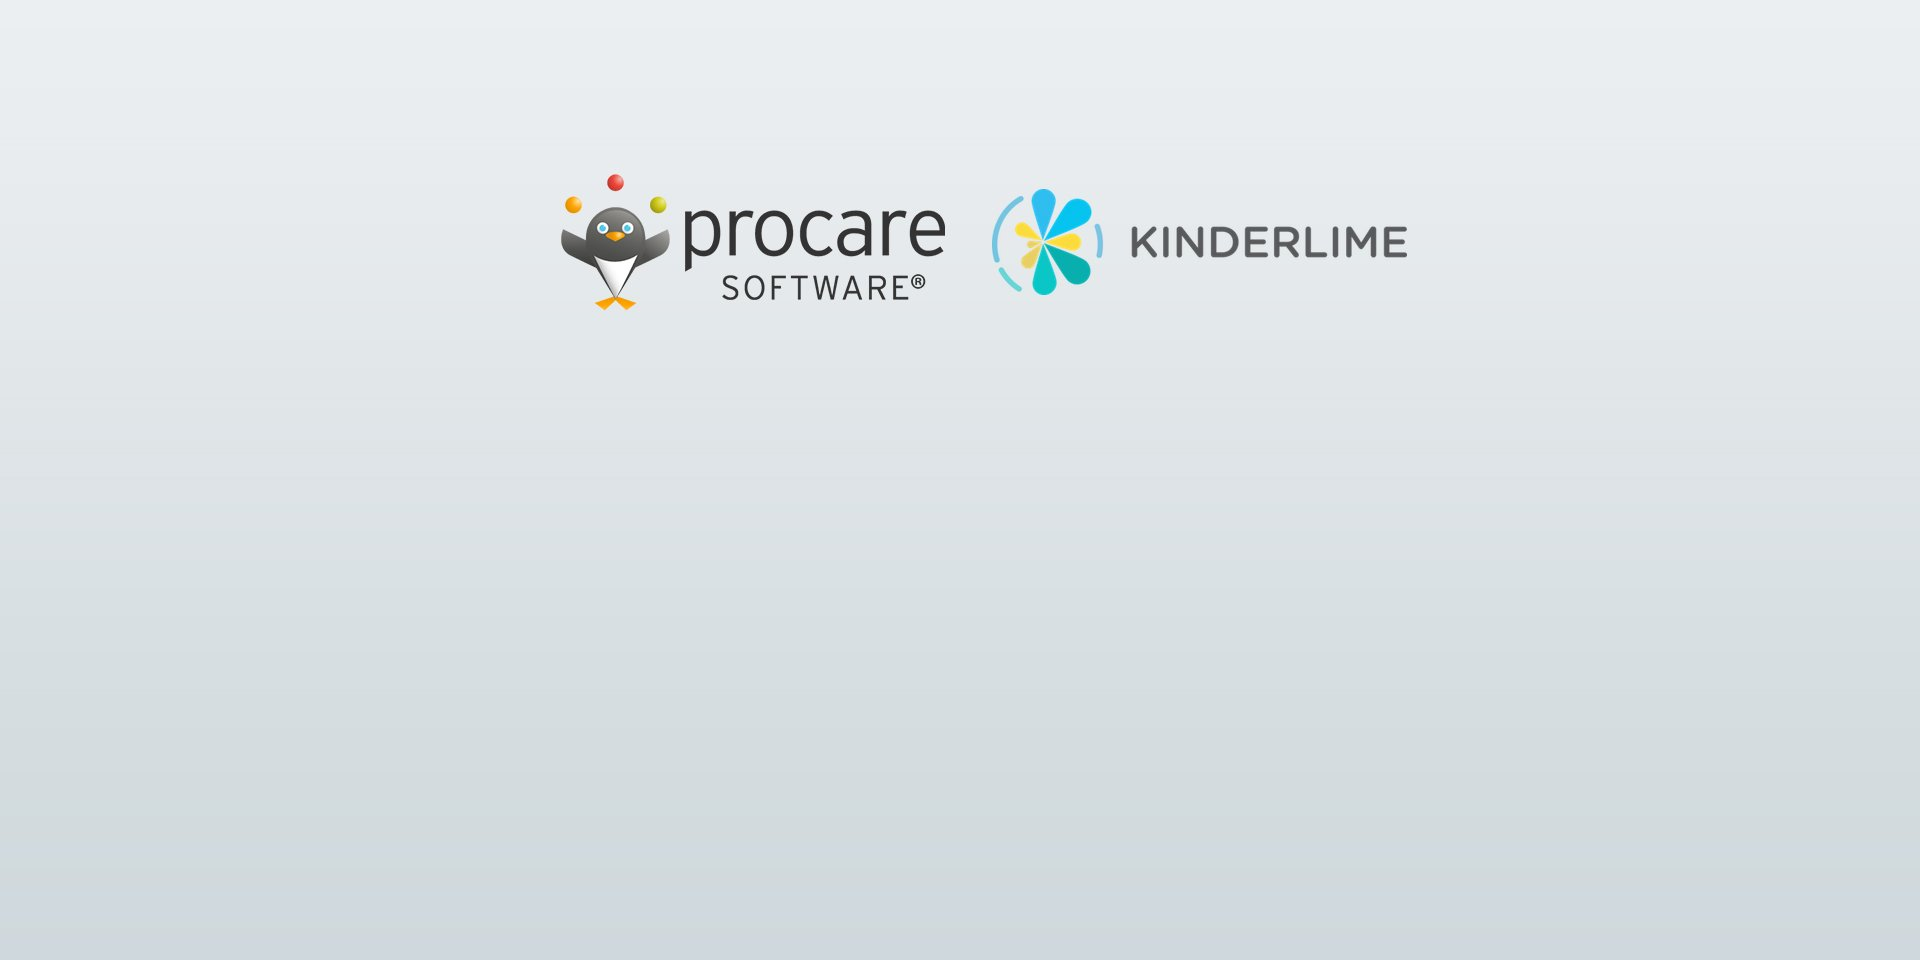 Press Release: Acquisition of Kinderlime